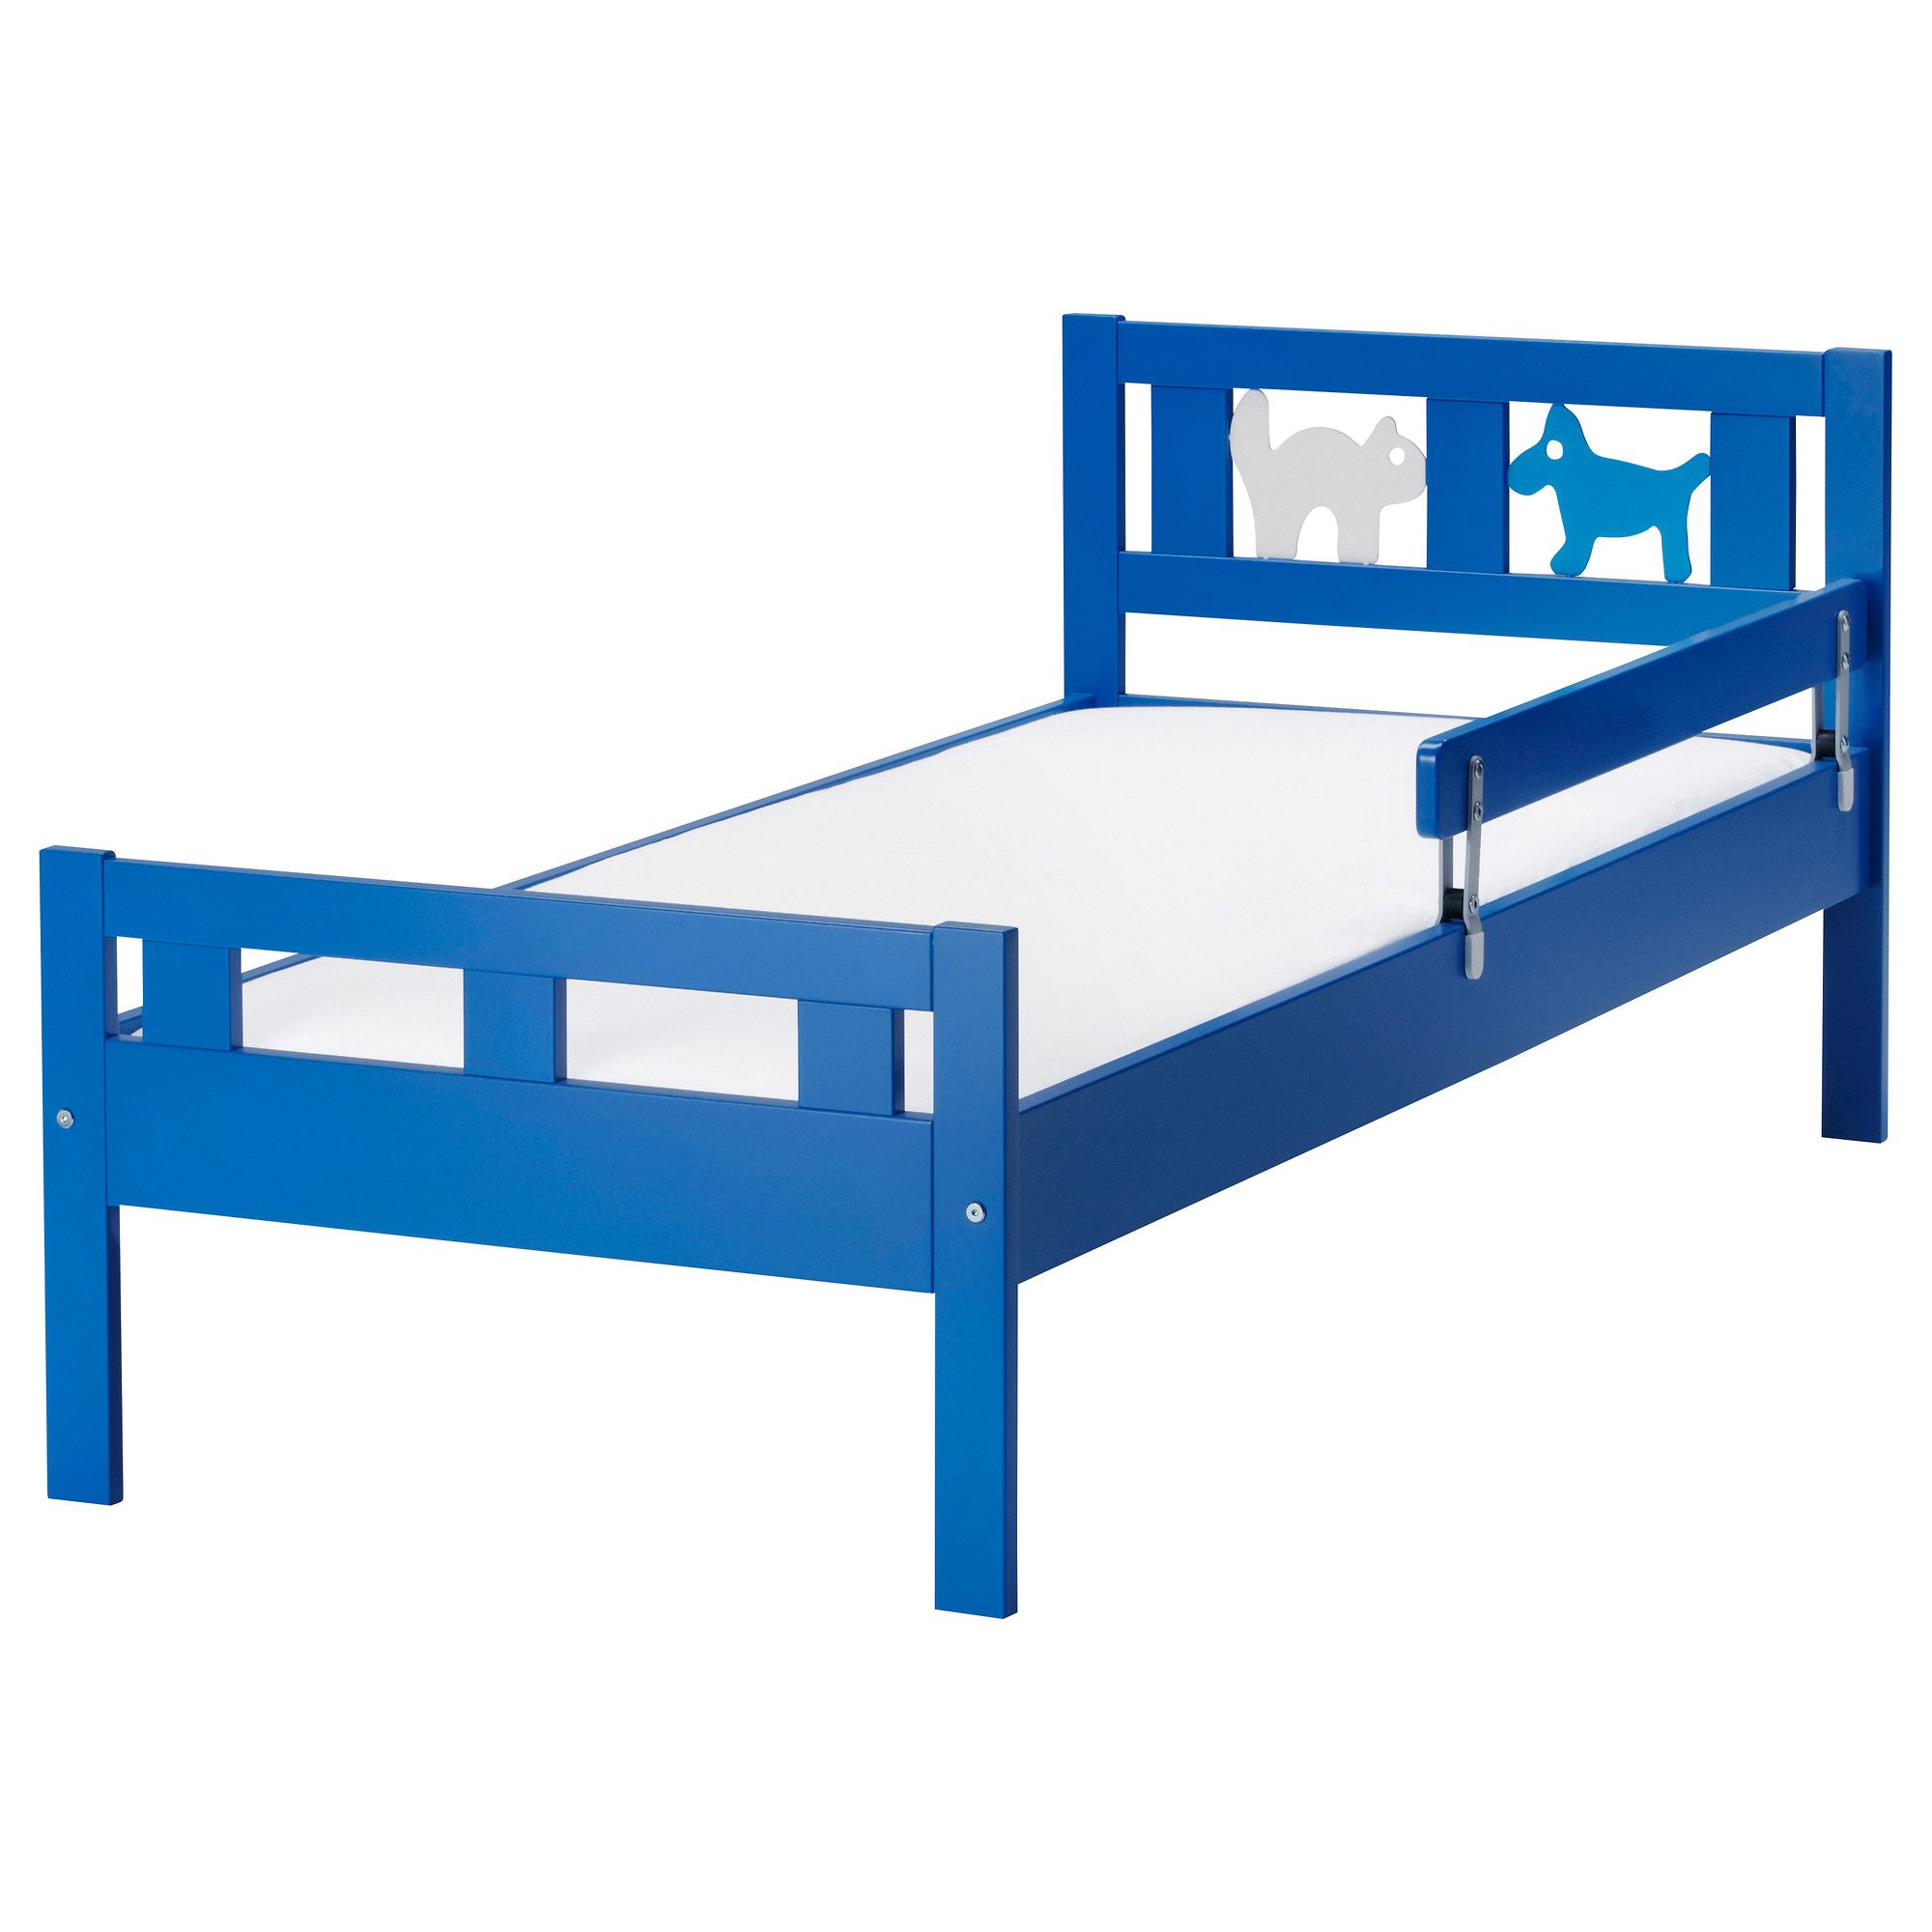 Kritter Bed Frame With Slatted Bed Base Blue Ikea Big